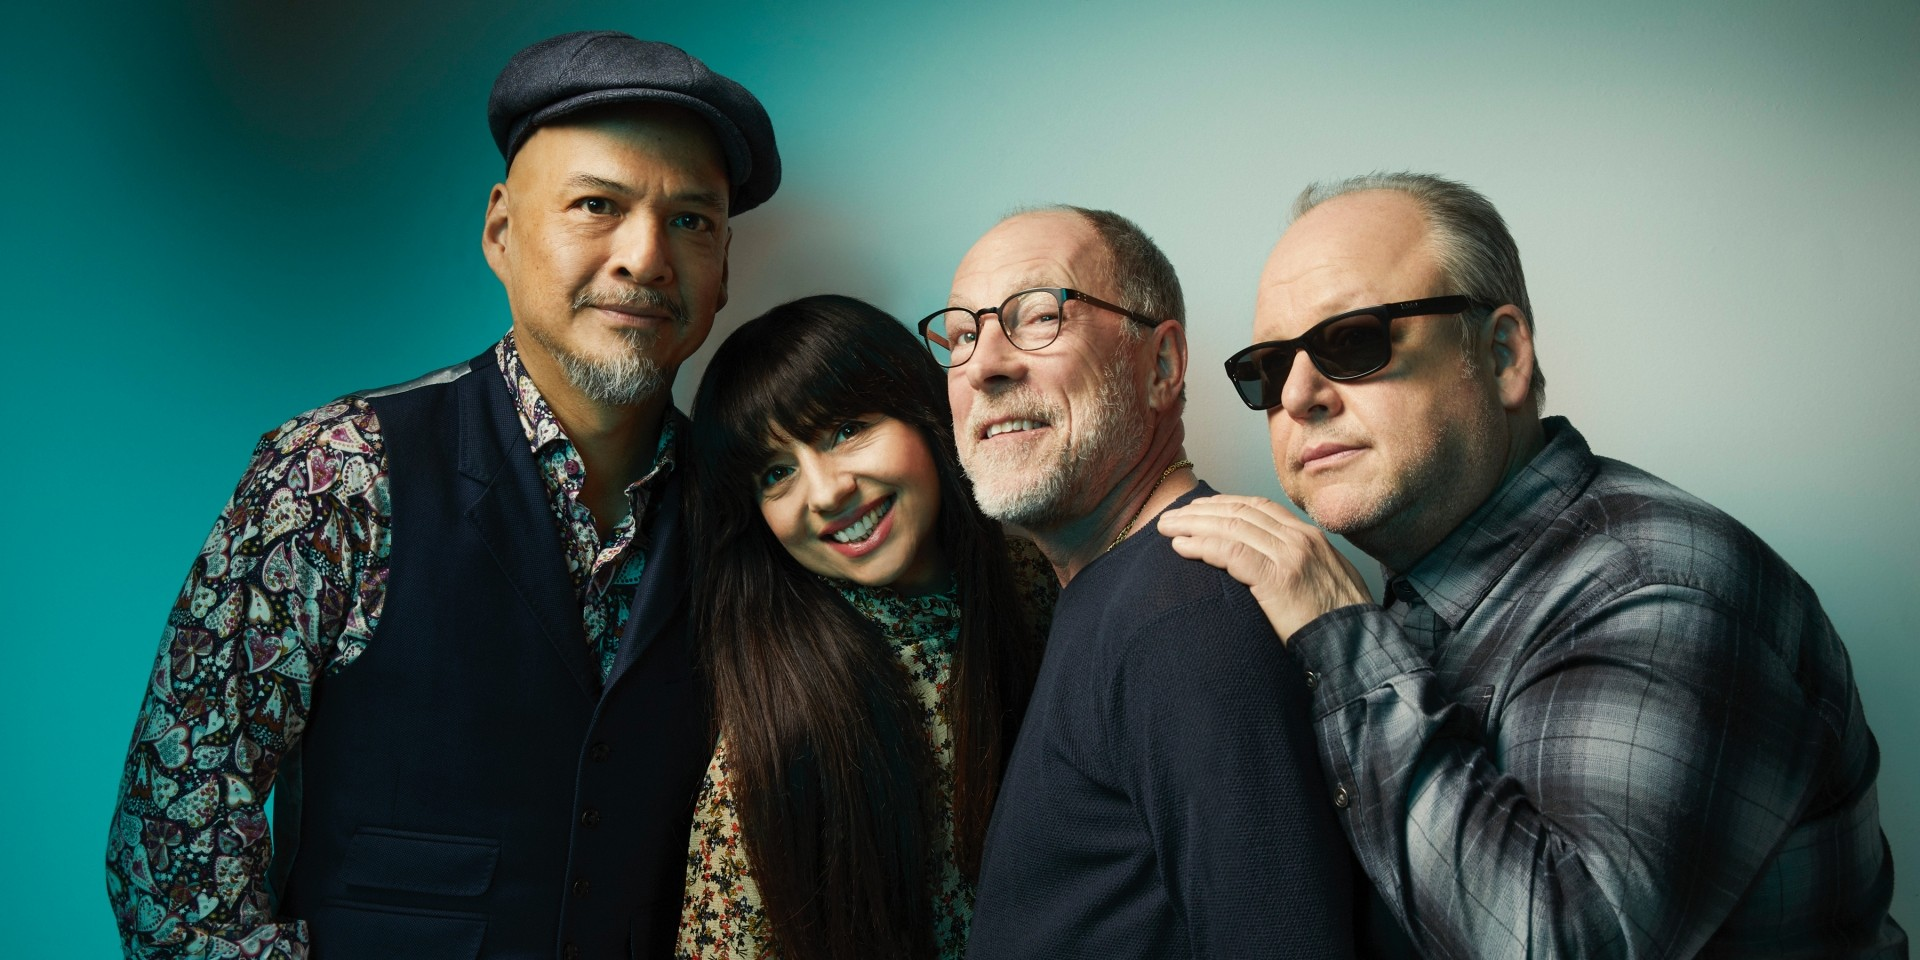 PIXIES releases second single, 'Catfish Kate', from upcoming album – watch